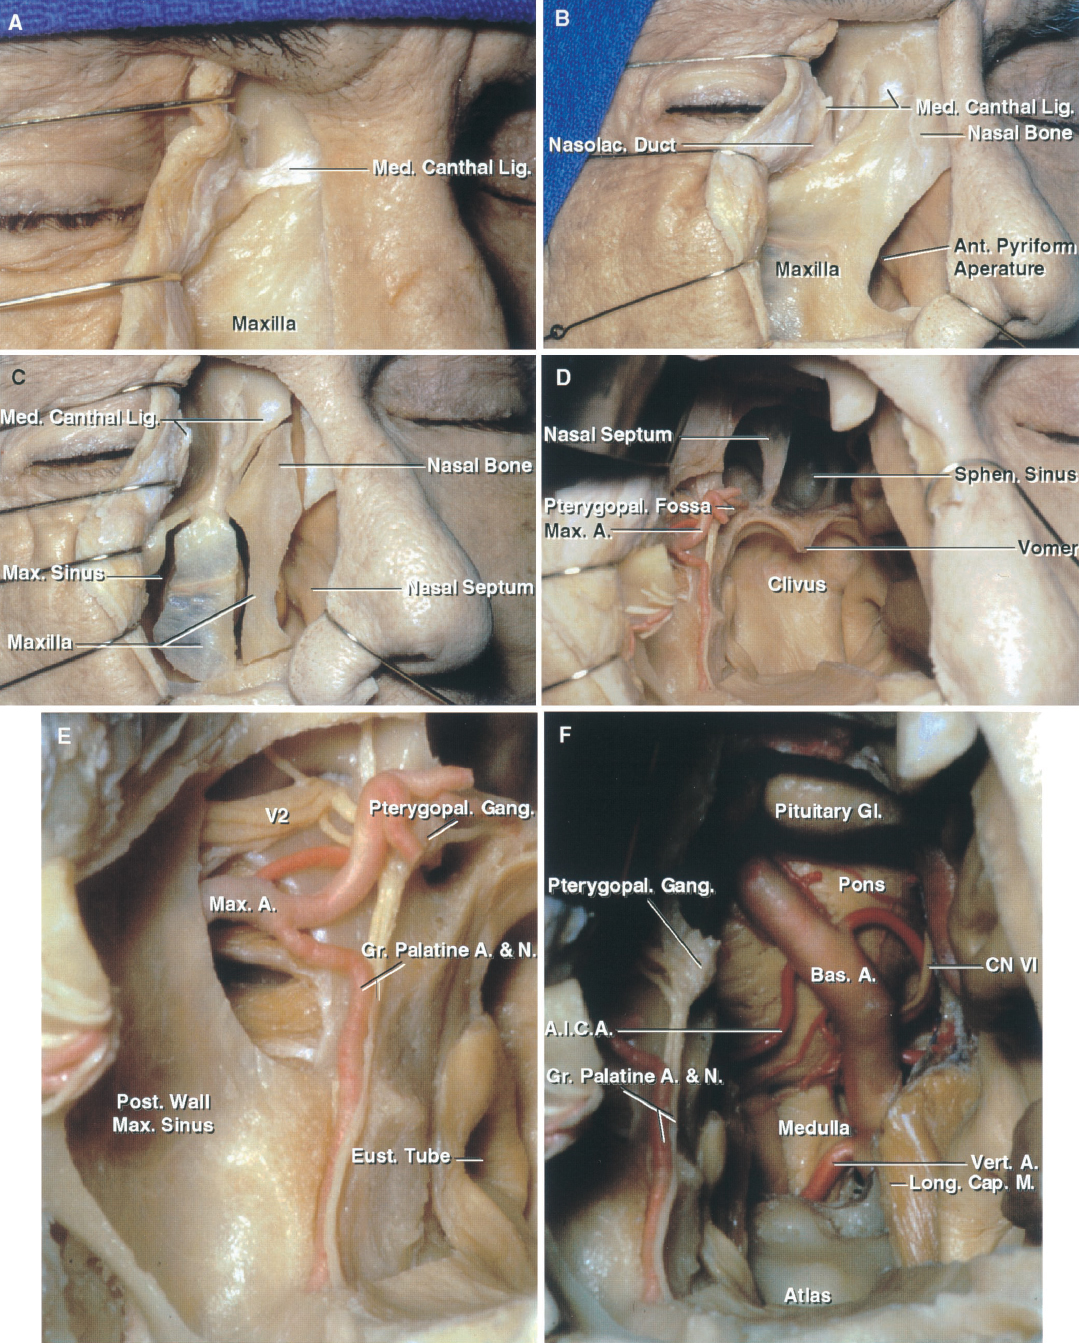 FIGURE 6.15. Medial maxillotomy approach to the clivus and foramen magnum. A, a lateral rhinotomy incision has been extended along the medial orbital rim. The medial canthal ligament has been exposed. B, the medial canthal ligament has been divided to expose the medial aspect of the orbit. The ligament can be preserved and the medial orbital wall left intact if orbital exposure is not needed. The anterior pyriform aperture is exposed. C, the osteotomies are as outlined to open the nasal cavity and medial maxilla. The medial one opens the nasal cavity and the lateral bone removal exposes the maxillary sinus. The medial maxillotomy aids in exposing the clivus. D, the exposure has been directed to the posterior nasopharyngeal wall behind which the clivus sits. The anterior wall of the sphenoid sinus has been removed, exposing the sphenoid septum. The posterior part of the nasal septum has been removed to expose the clivus below the sphenoid sinus. Removal of the medial part of the posterior wall of the maxillary sinus exposes the maxillary artery in the pterygopalatine fossa. E, enlarged view of the pterygopalatine fossa exposed by removing the medial part of the posterior wall of the maxillary sinus. The maxillary nerve and artery enter the pterygopalatine fossa. The maxillary artery is the major source of bleeding during surgery in this area. The maxillary artery enters the pterygopalatine fossa by passing through the pterygomaxillary fissure. The maxillary nerve enters the fossa by passing through the foramen rotundum and gives off communicating rami to the pterygopalatine ganglion. F, the pharyngeal mucosa has been opened, the longus capitis reflected laterally, and the clivus and dura opened to expose the basilar artery ascending in front of the pons. The pituitary gland is at the upper margin of the exposure. A., artery; A.I.C.A., anteroinferior cerebellar artery; Ant., anterior; Bas., basilar; Cap., capitis; CN, cranial nerve; Eust., eustachian; Gang., ganglion; Gl., gland; Gr., greater; Lig., ligament; Long., longus; M., muscle; Max., maxillary; Med., medial; N., nerve; Nasolac., nasolacrimal; Post., posterior; Pterygopal., pterygopalatine; Sphen., sphenoid; Vert., vertebral.